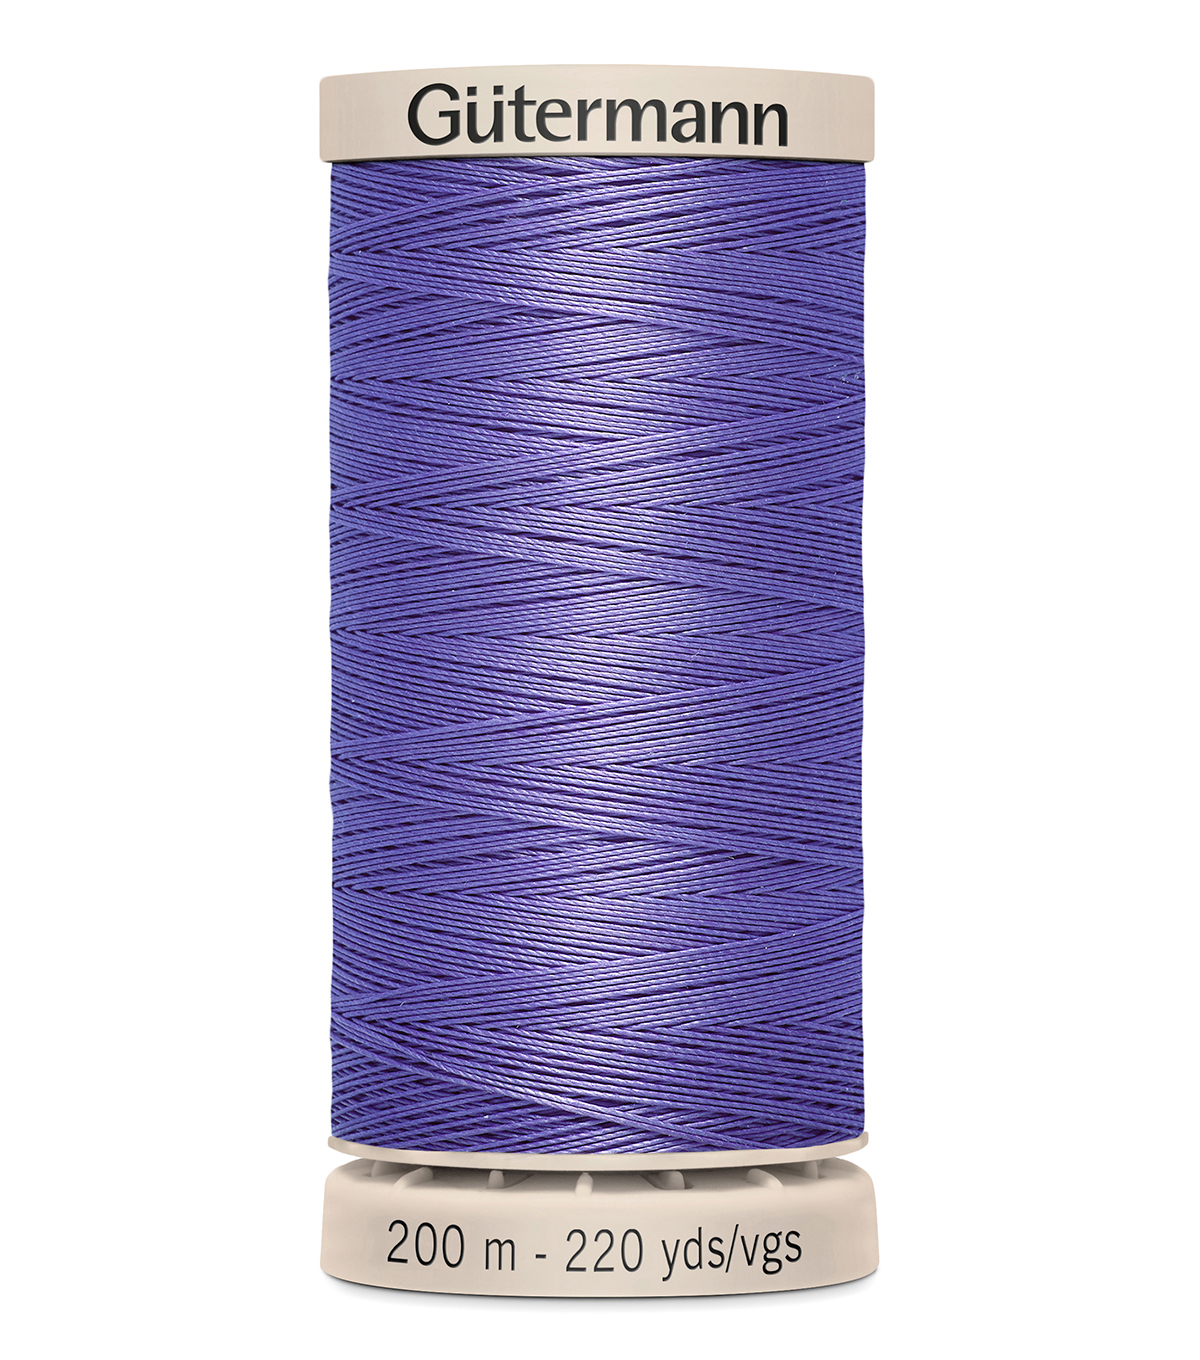 Gutermann Hand Quilting Thread 200 Meters (220 Yrds)-Primary, Parma Violet #4434